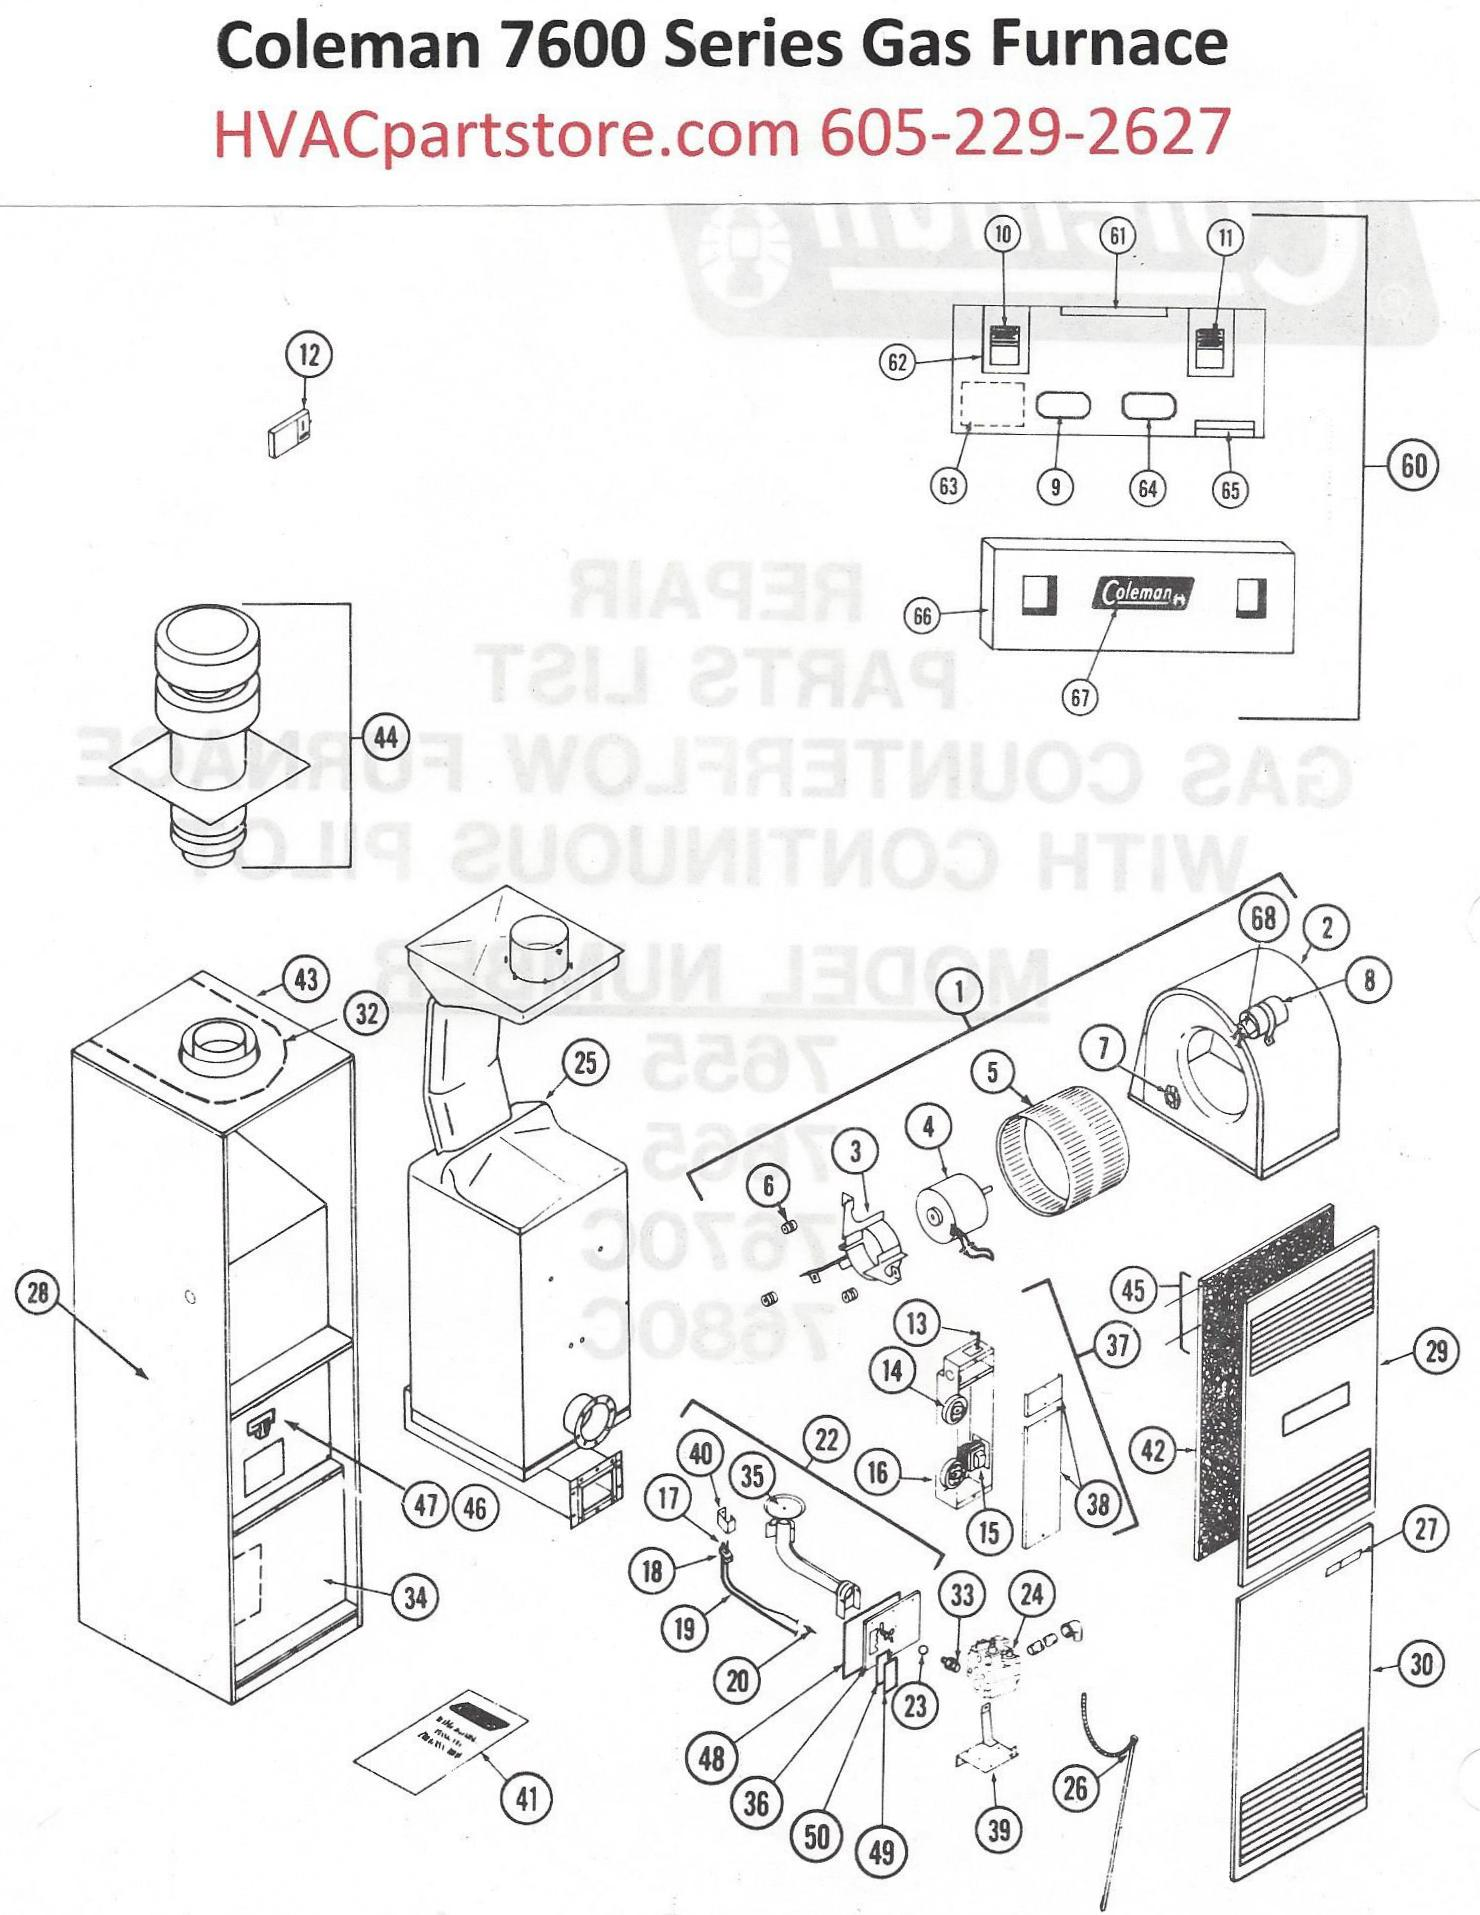 Coleman Evcon Presidential 7900 C Series Wiring Diagram 55 Thermostat Eldon Rv 7655 7665diagram 79f56d20 D331 4db2 9cdc 3b162d351c81 Gas Furnace Dolgular Com At Highcare